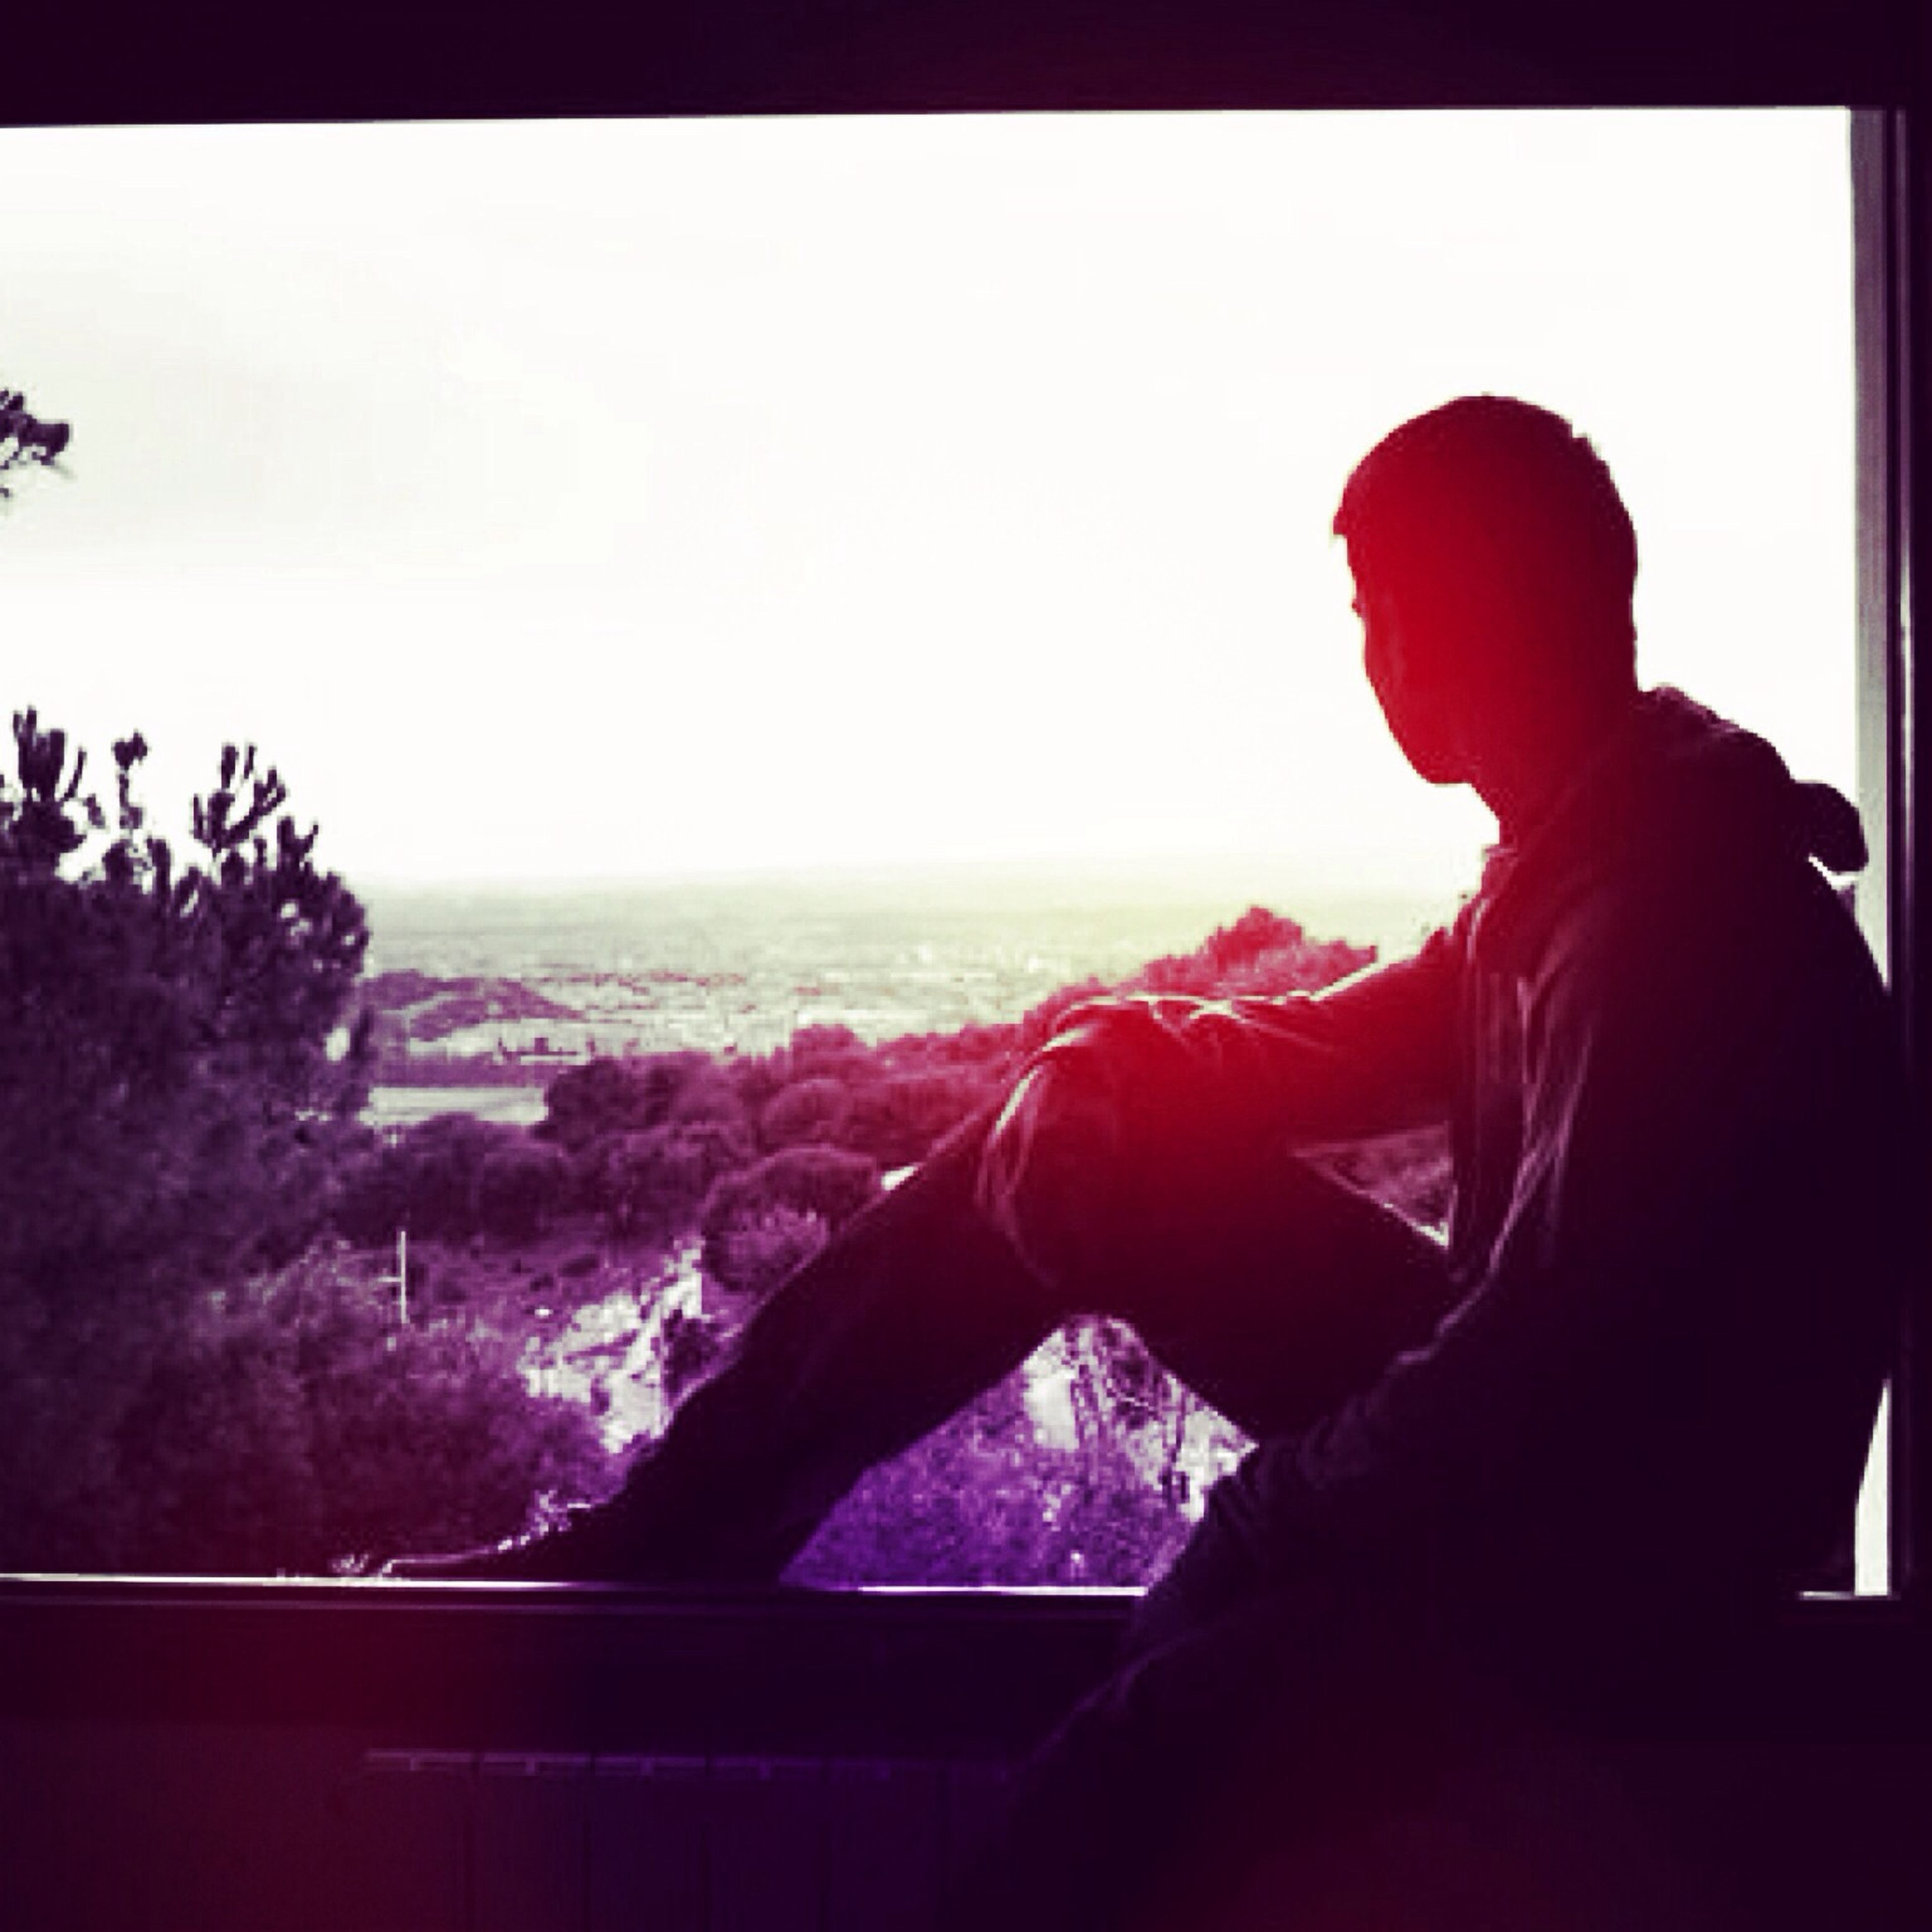 lifestyles, leisure activity, clear sky, silhouette, sitting, person, copy space, sky, standing, rear view, three quarter length, indoors, looking at view, men, waist up, side view, sunset, nature